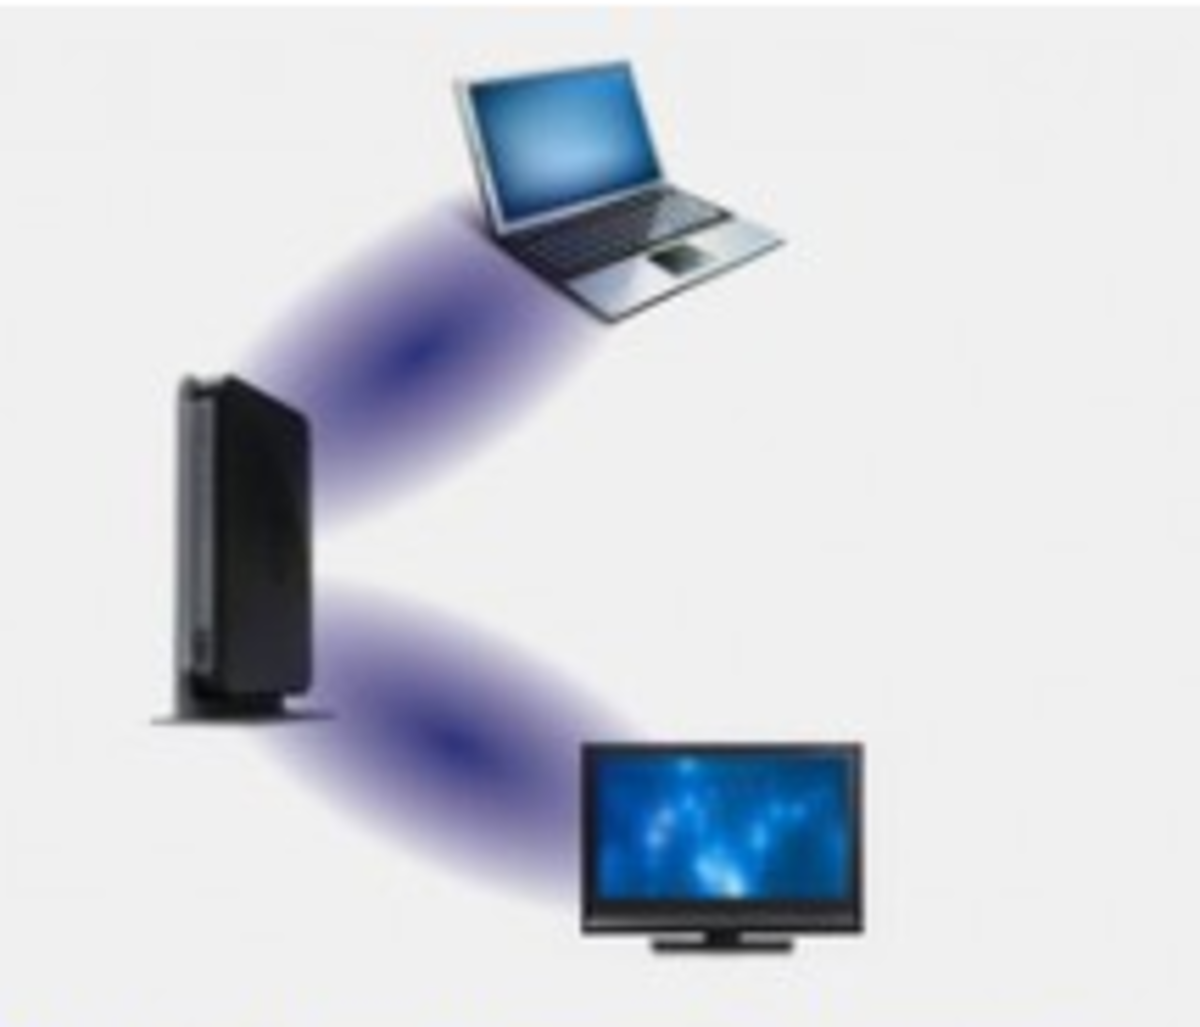 Beamforming wireless routers focus their data stream on the clients